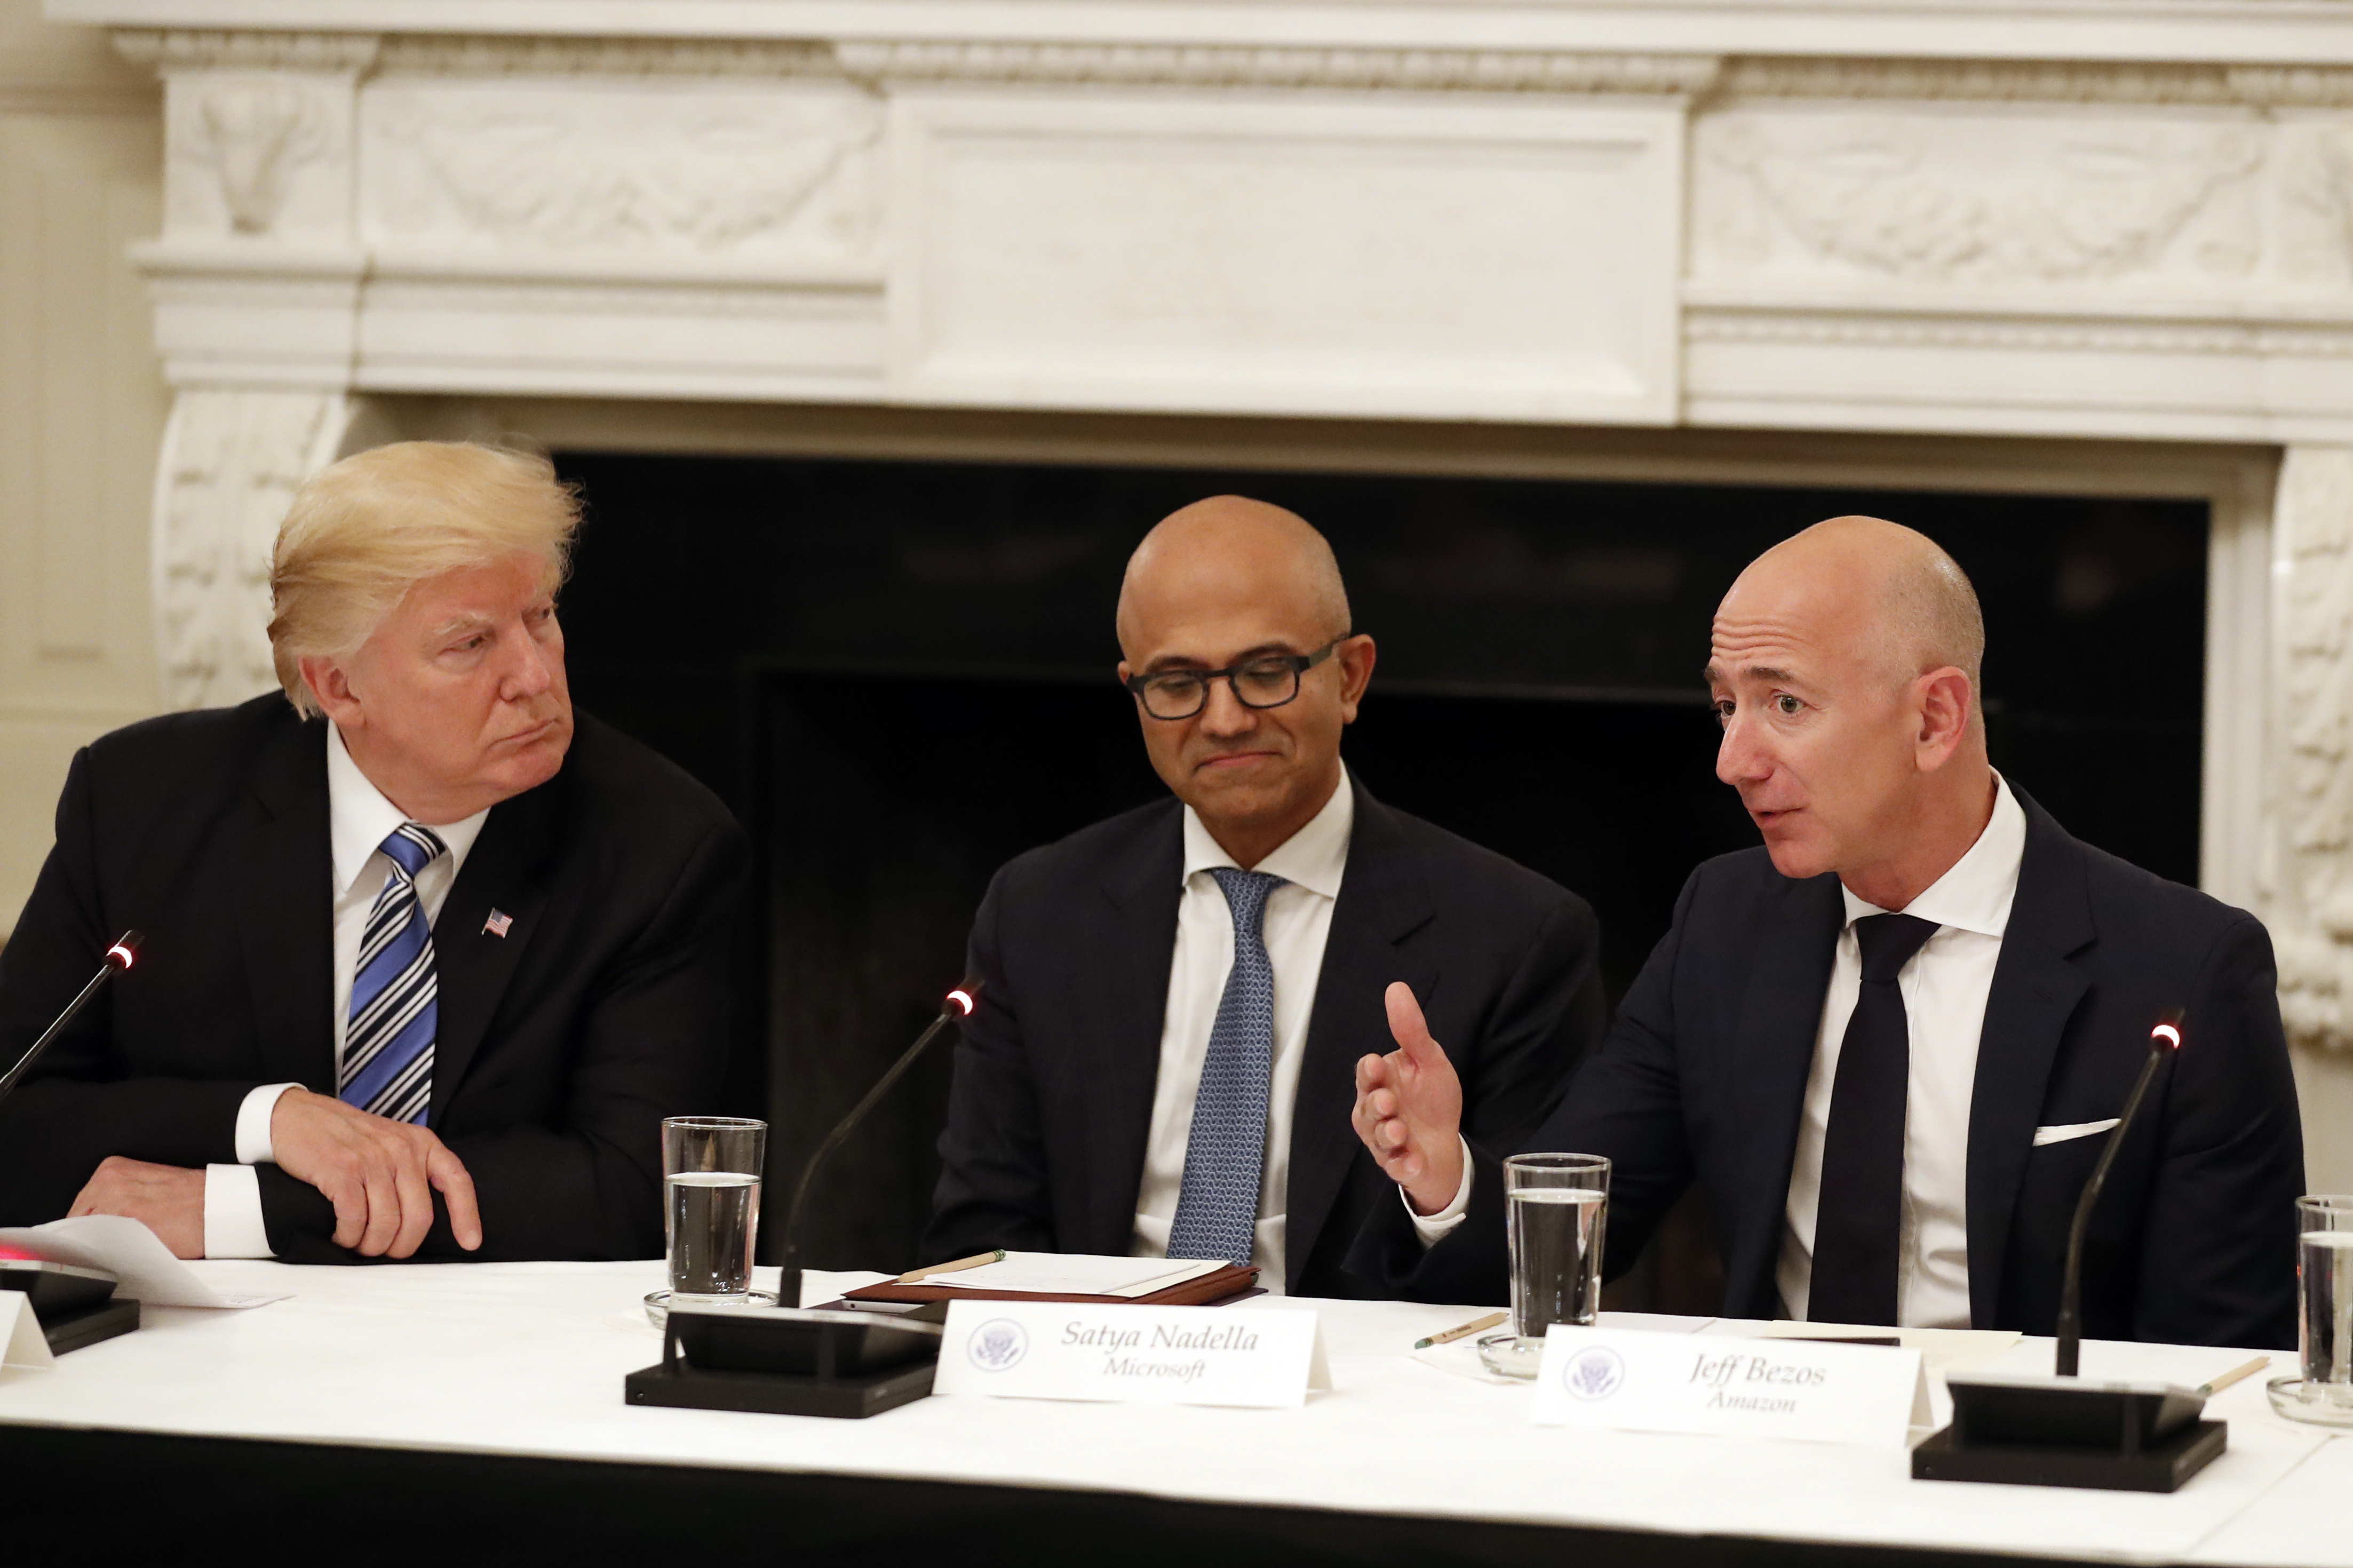 Donald Trump, Tim Cook, Satya Nadella, Jeff Bezos President Donald Trump, left, and Satya Nadella, Chief Executive Officer of Microsoft, center, listen as Jeff Bezos, Chief Executive Officer of Amazon, speaks during an American Technology Council roundtable in the State Dinning Room of the White House, in WashingtonTrump Technology, Washington, USA - 19 Jun 2017